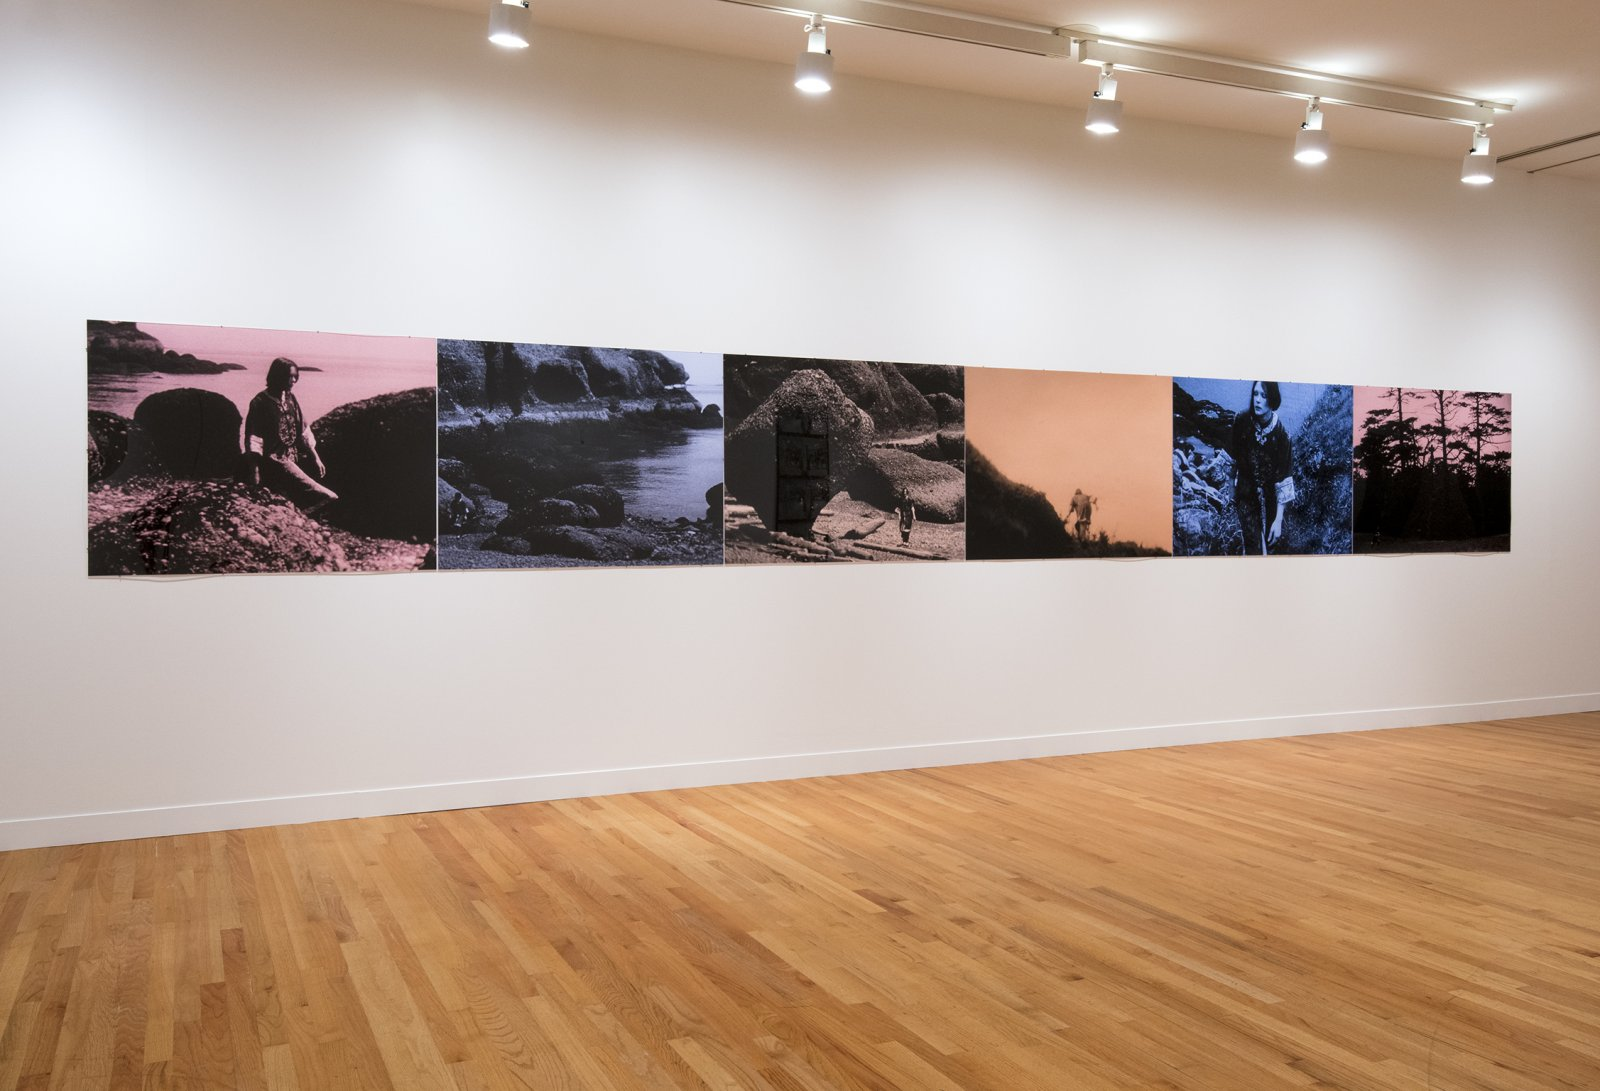 Ian Wallace, Colours of the Afternoon, 1978–1979, 6 hand-coloured silver gelatin prints, 36 x 287 in. (92 x 730 cm). Installation view, A Literature of Images, Vancouver Art Gallery, 2012 by Ian Wallace